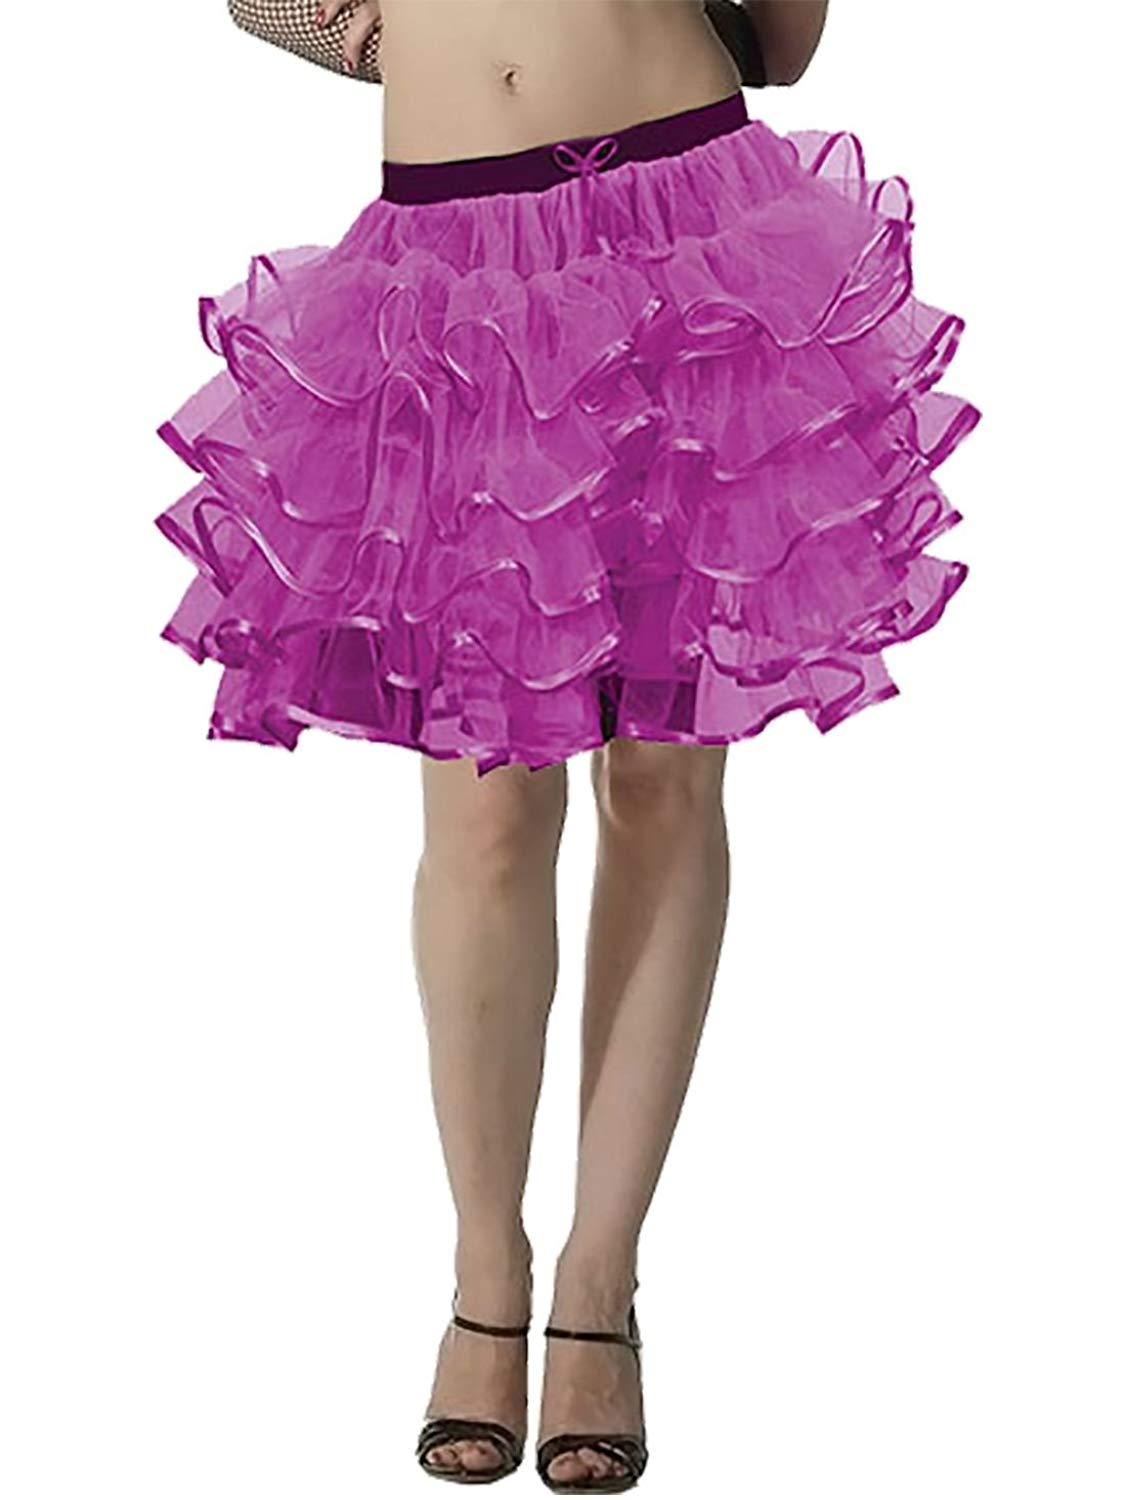 Rimi Hanger Womens 5 Layers Tutu Skirts with Ribban Ladeis Night Dance Party Wear Mini Skirt One Size